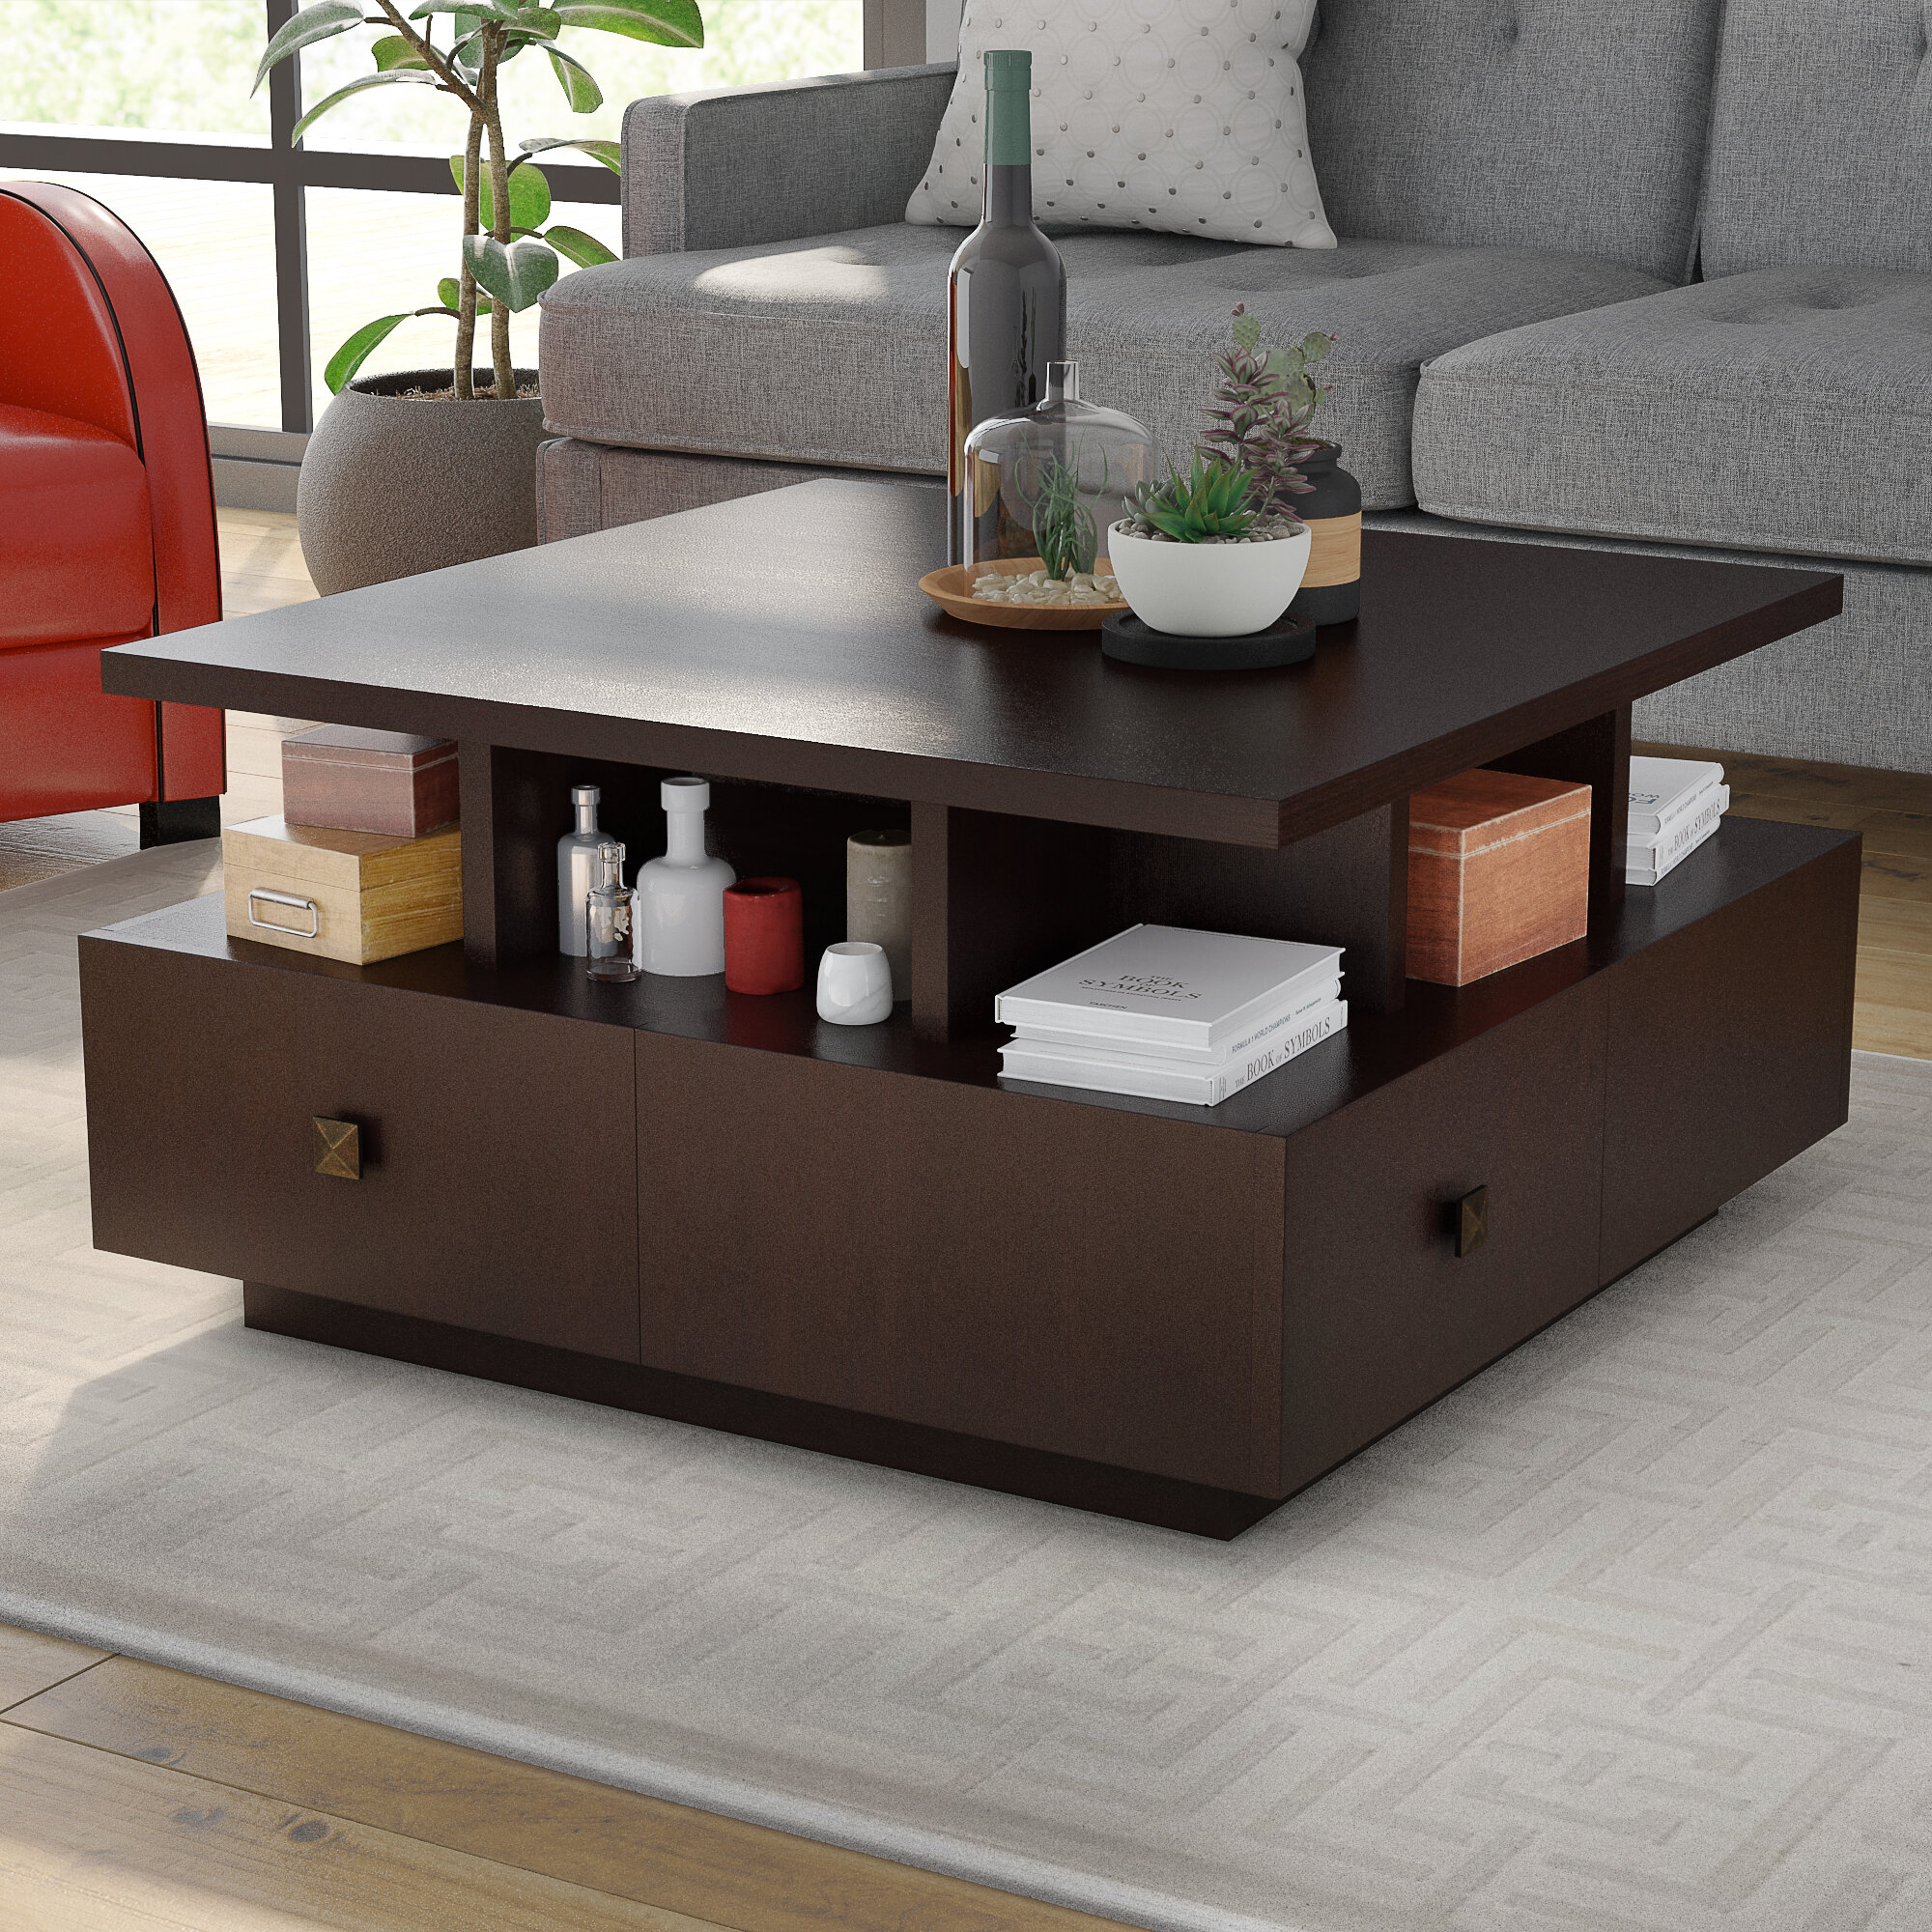 Narrow End Tables With Storage Living Room Coffee Table And ...